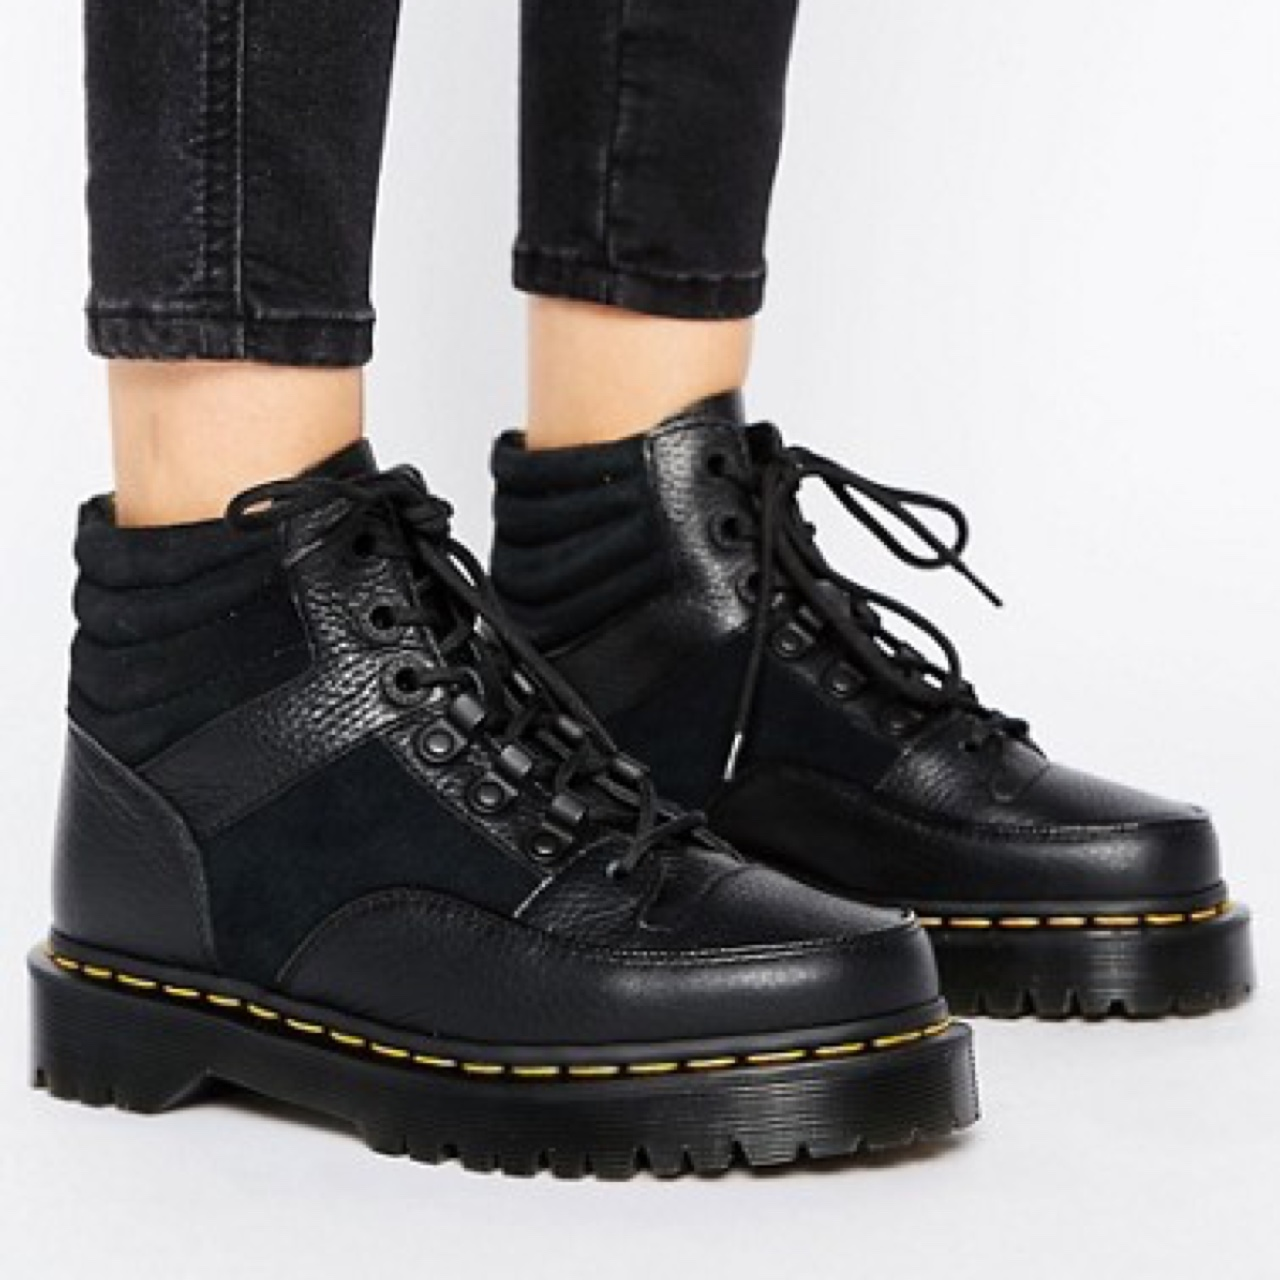 2019 factory price 100% original hot-selling genuine Dr Marten Aunt Sally Zuma Suede High Ankle Boots.... - Depop